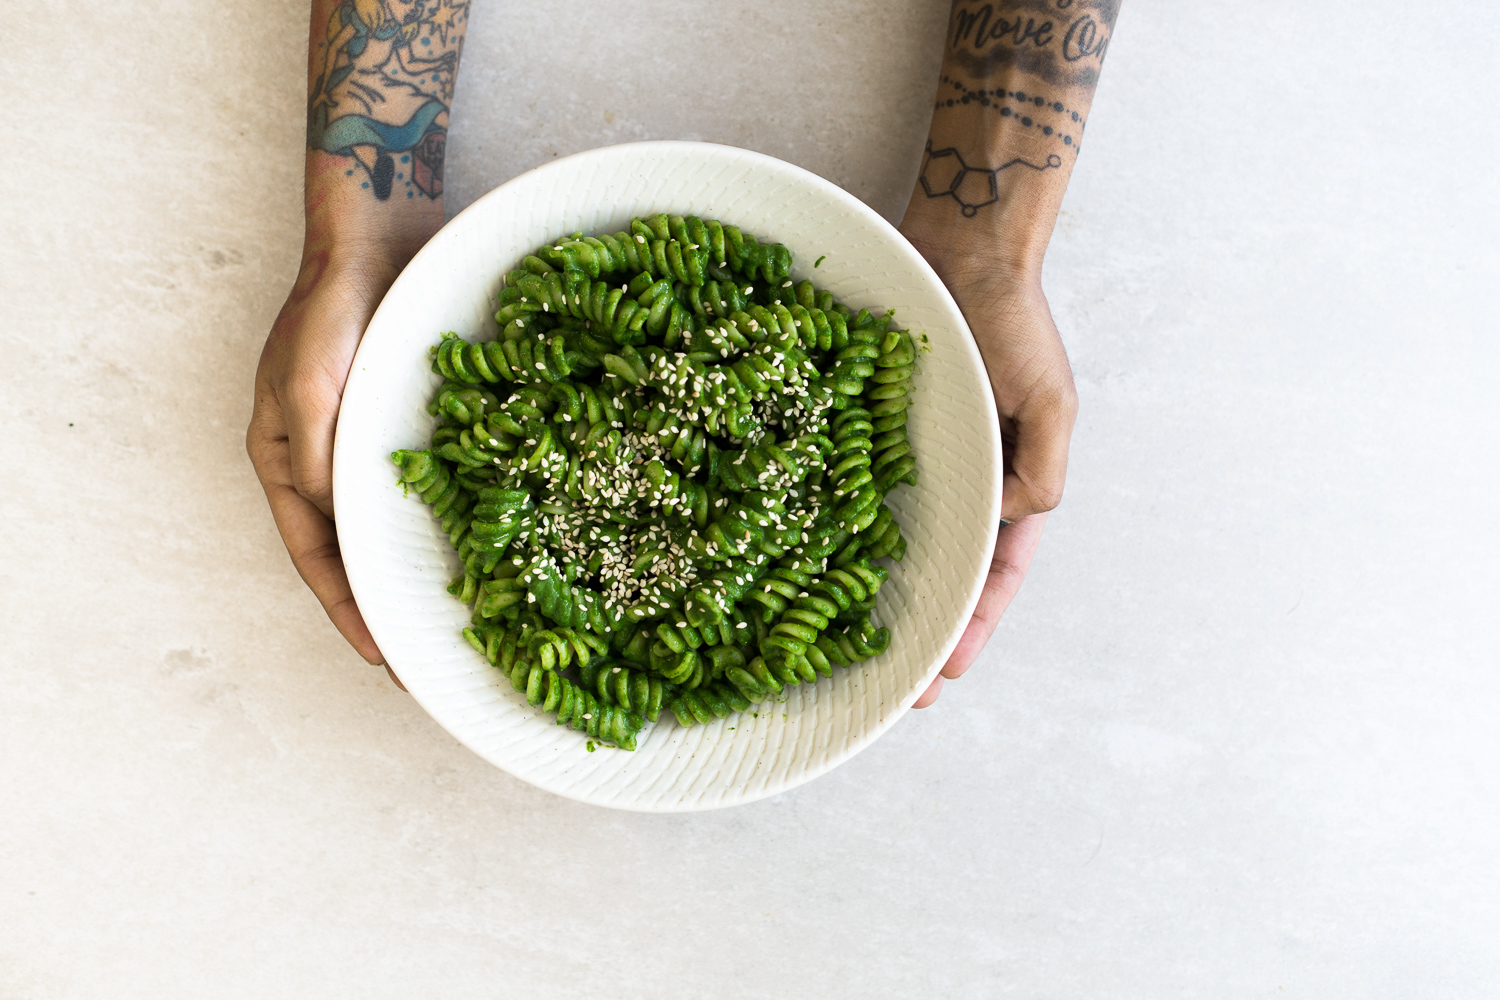 A simple Miso Pesto Pasta recipe made in under 15 minutes. Dairy Free, Vegan and loaded with Baby Spinach and Cilantro. Yum! #vegan #pesto #miso #asian #pasta #veganpesto #pestopasta #healthy #simple #easy #quickrecipes